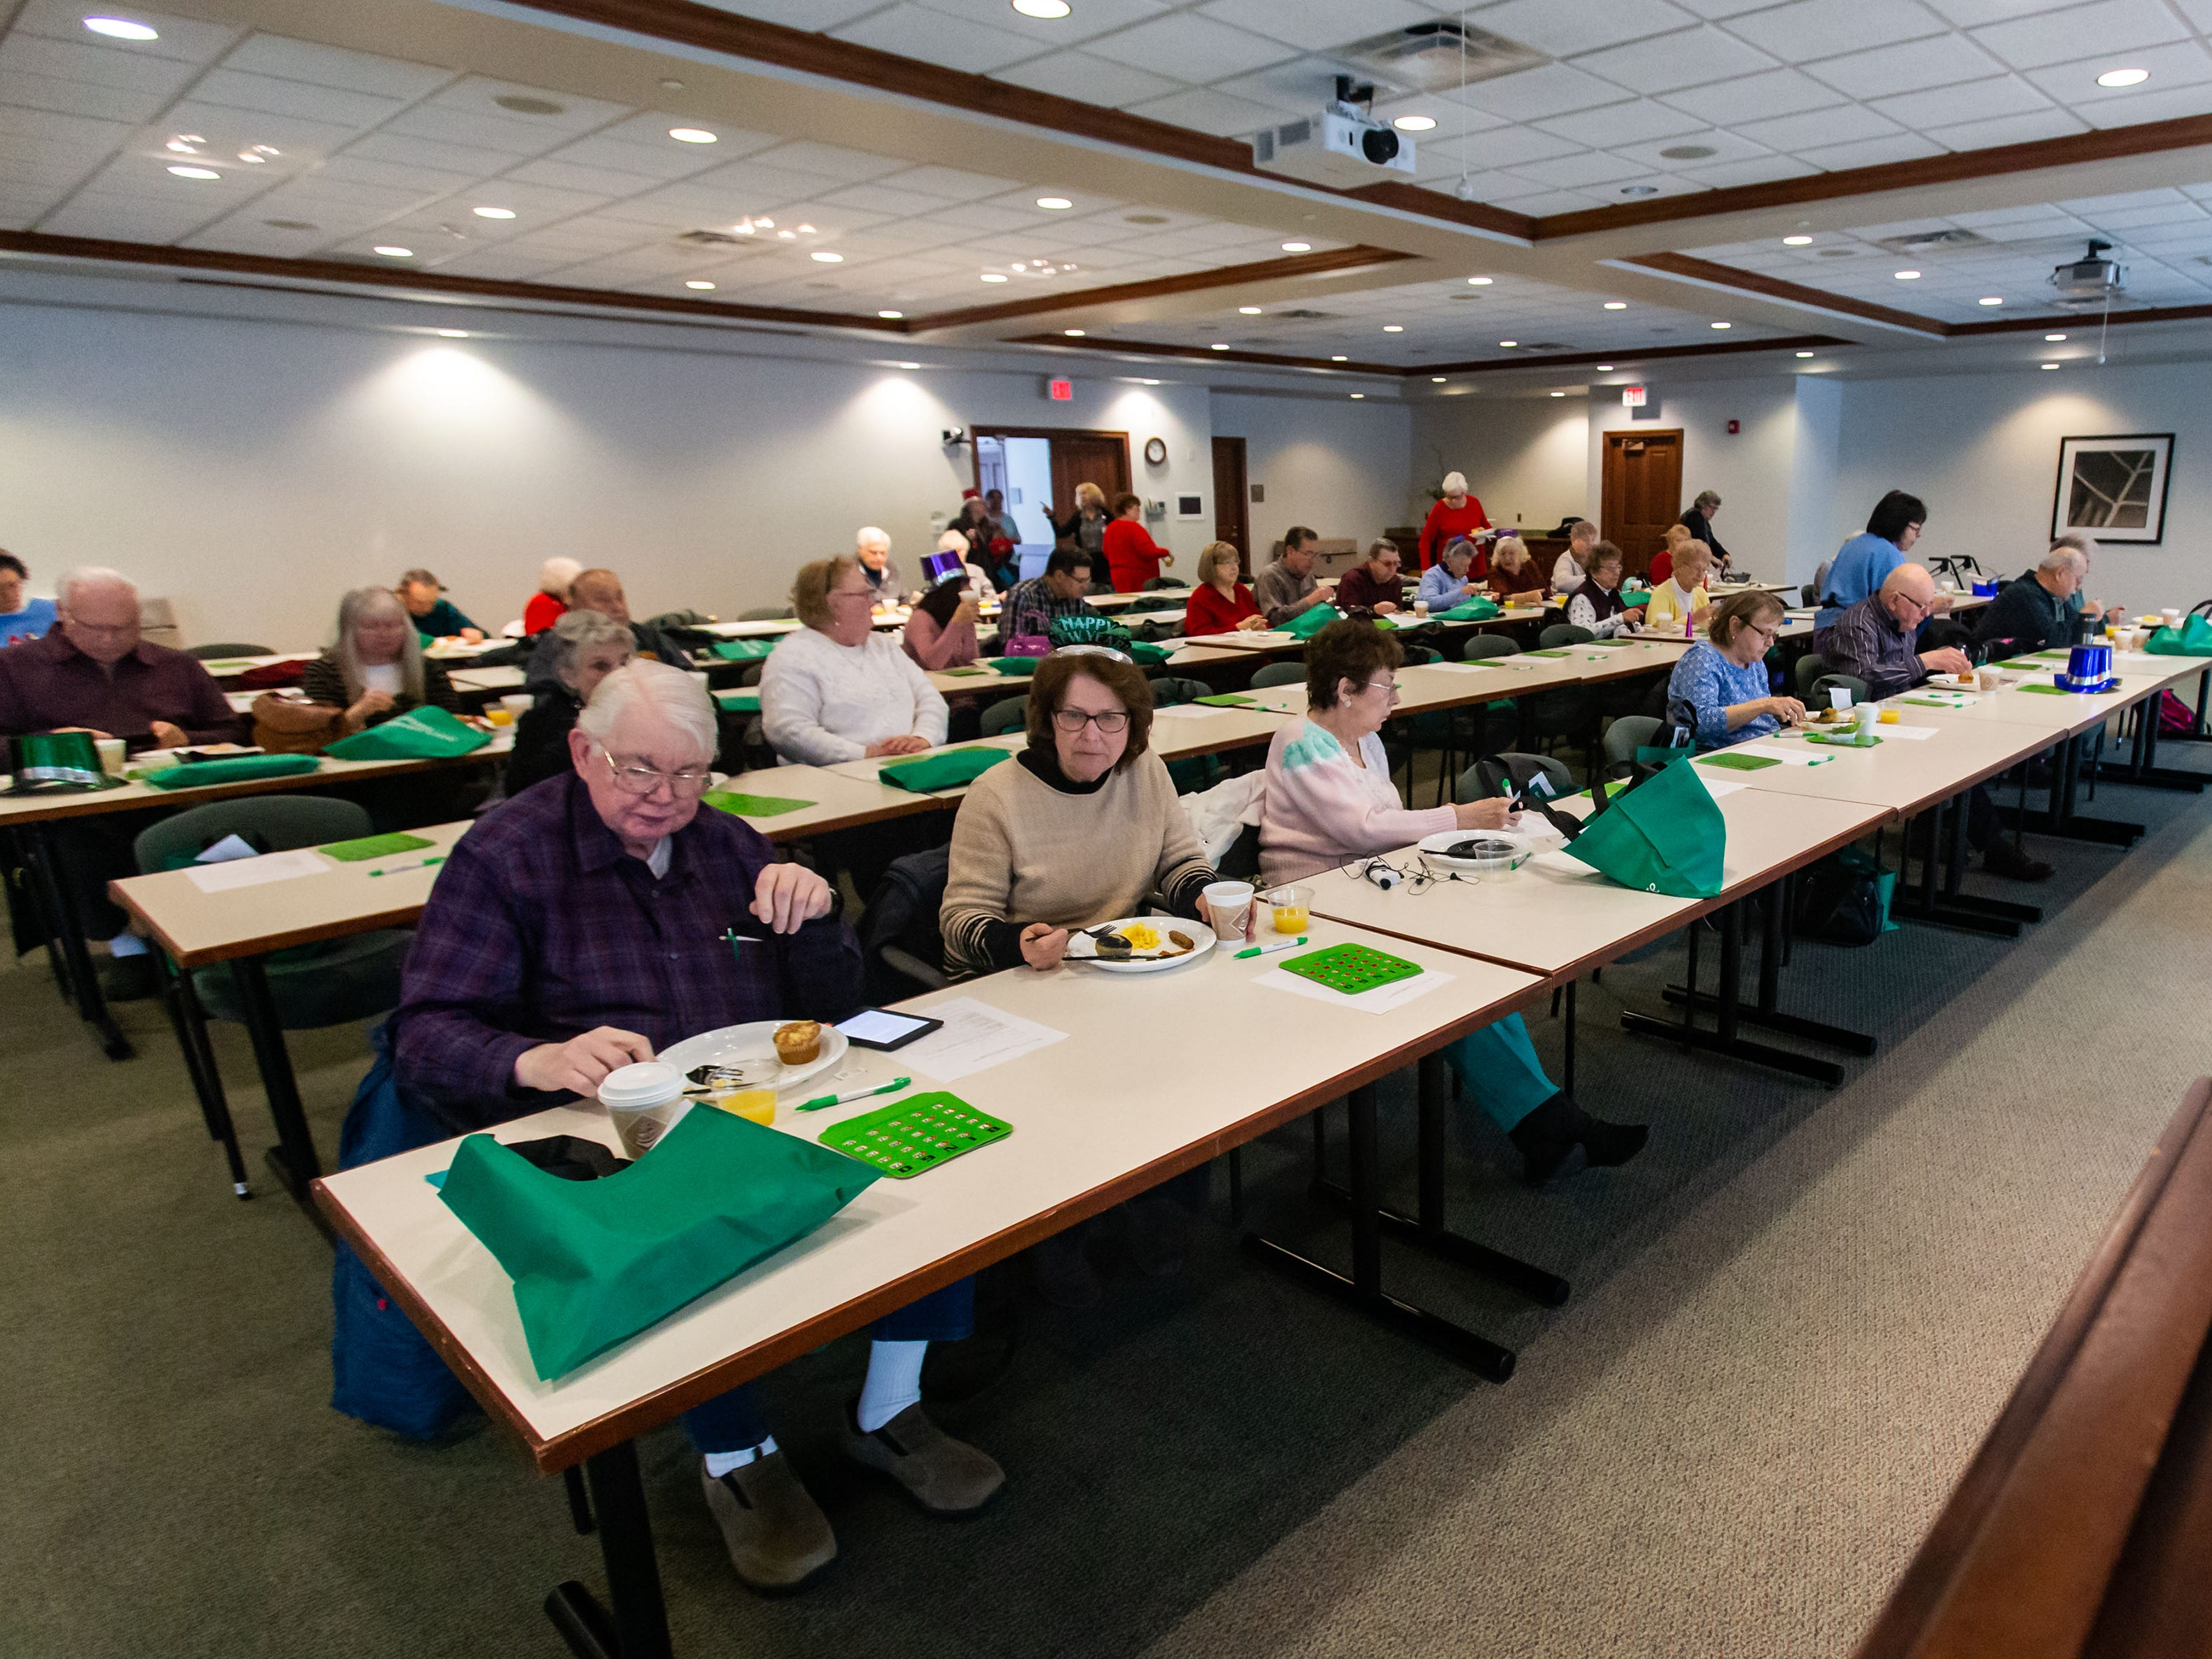 Area seniors enjoy good company and a delicious meal during the free monthly senior breakfast club at Aurora Health Care in Summit on Tuesday, Jan. 1, 2019. Senior Breakfast Club is held from 8 to 10 a.m. on the first Tuesday of each month and is open to seniors and their families. For more info please call Trish Golden at 262-434-1248.